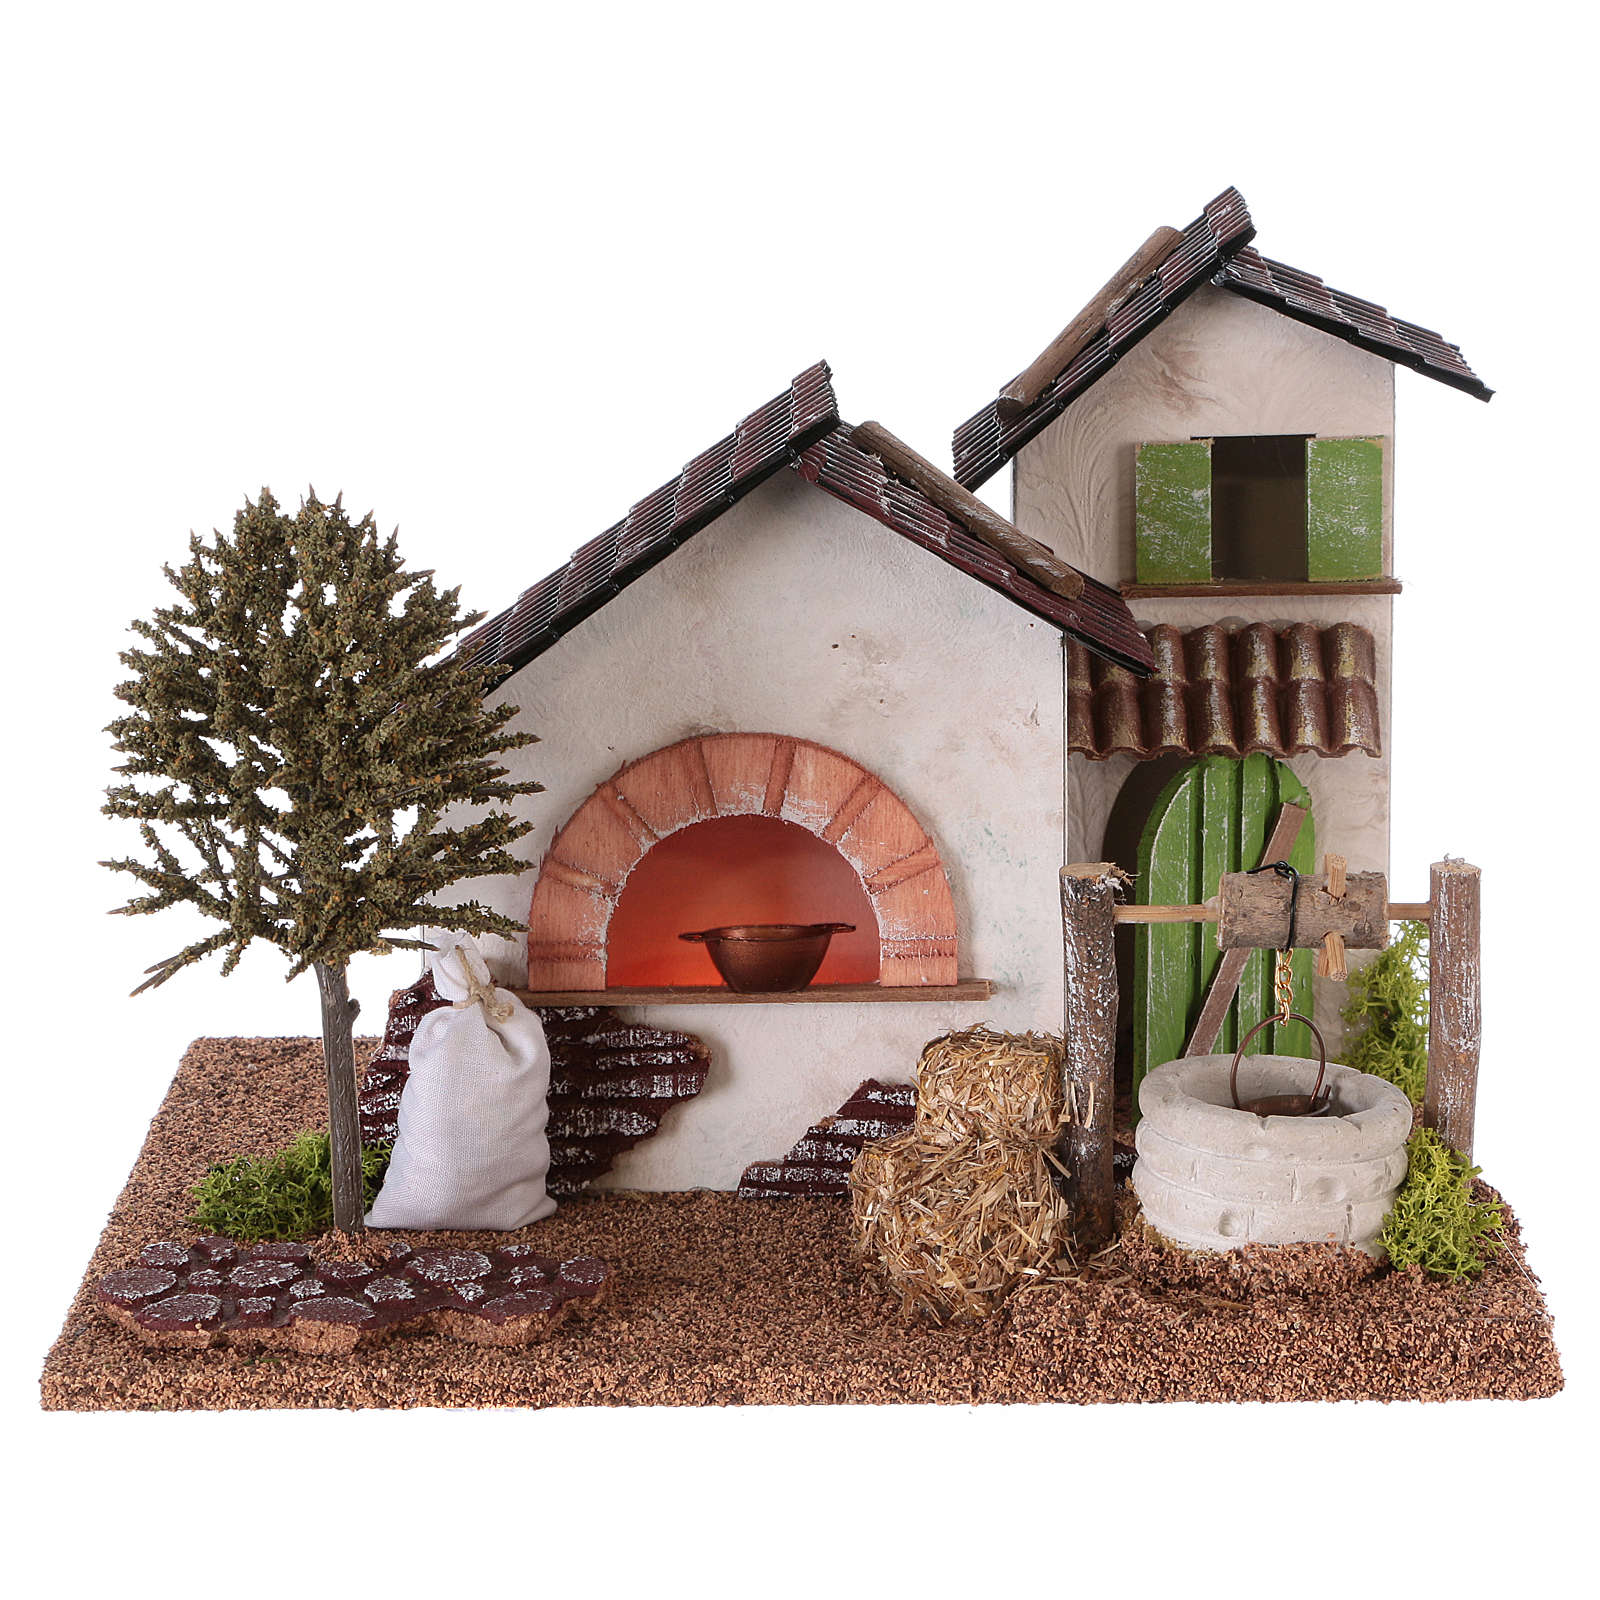 Farm with oven and well for Nativity scene 20x25x20 cm 4